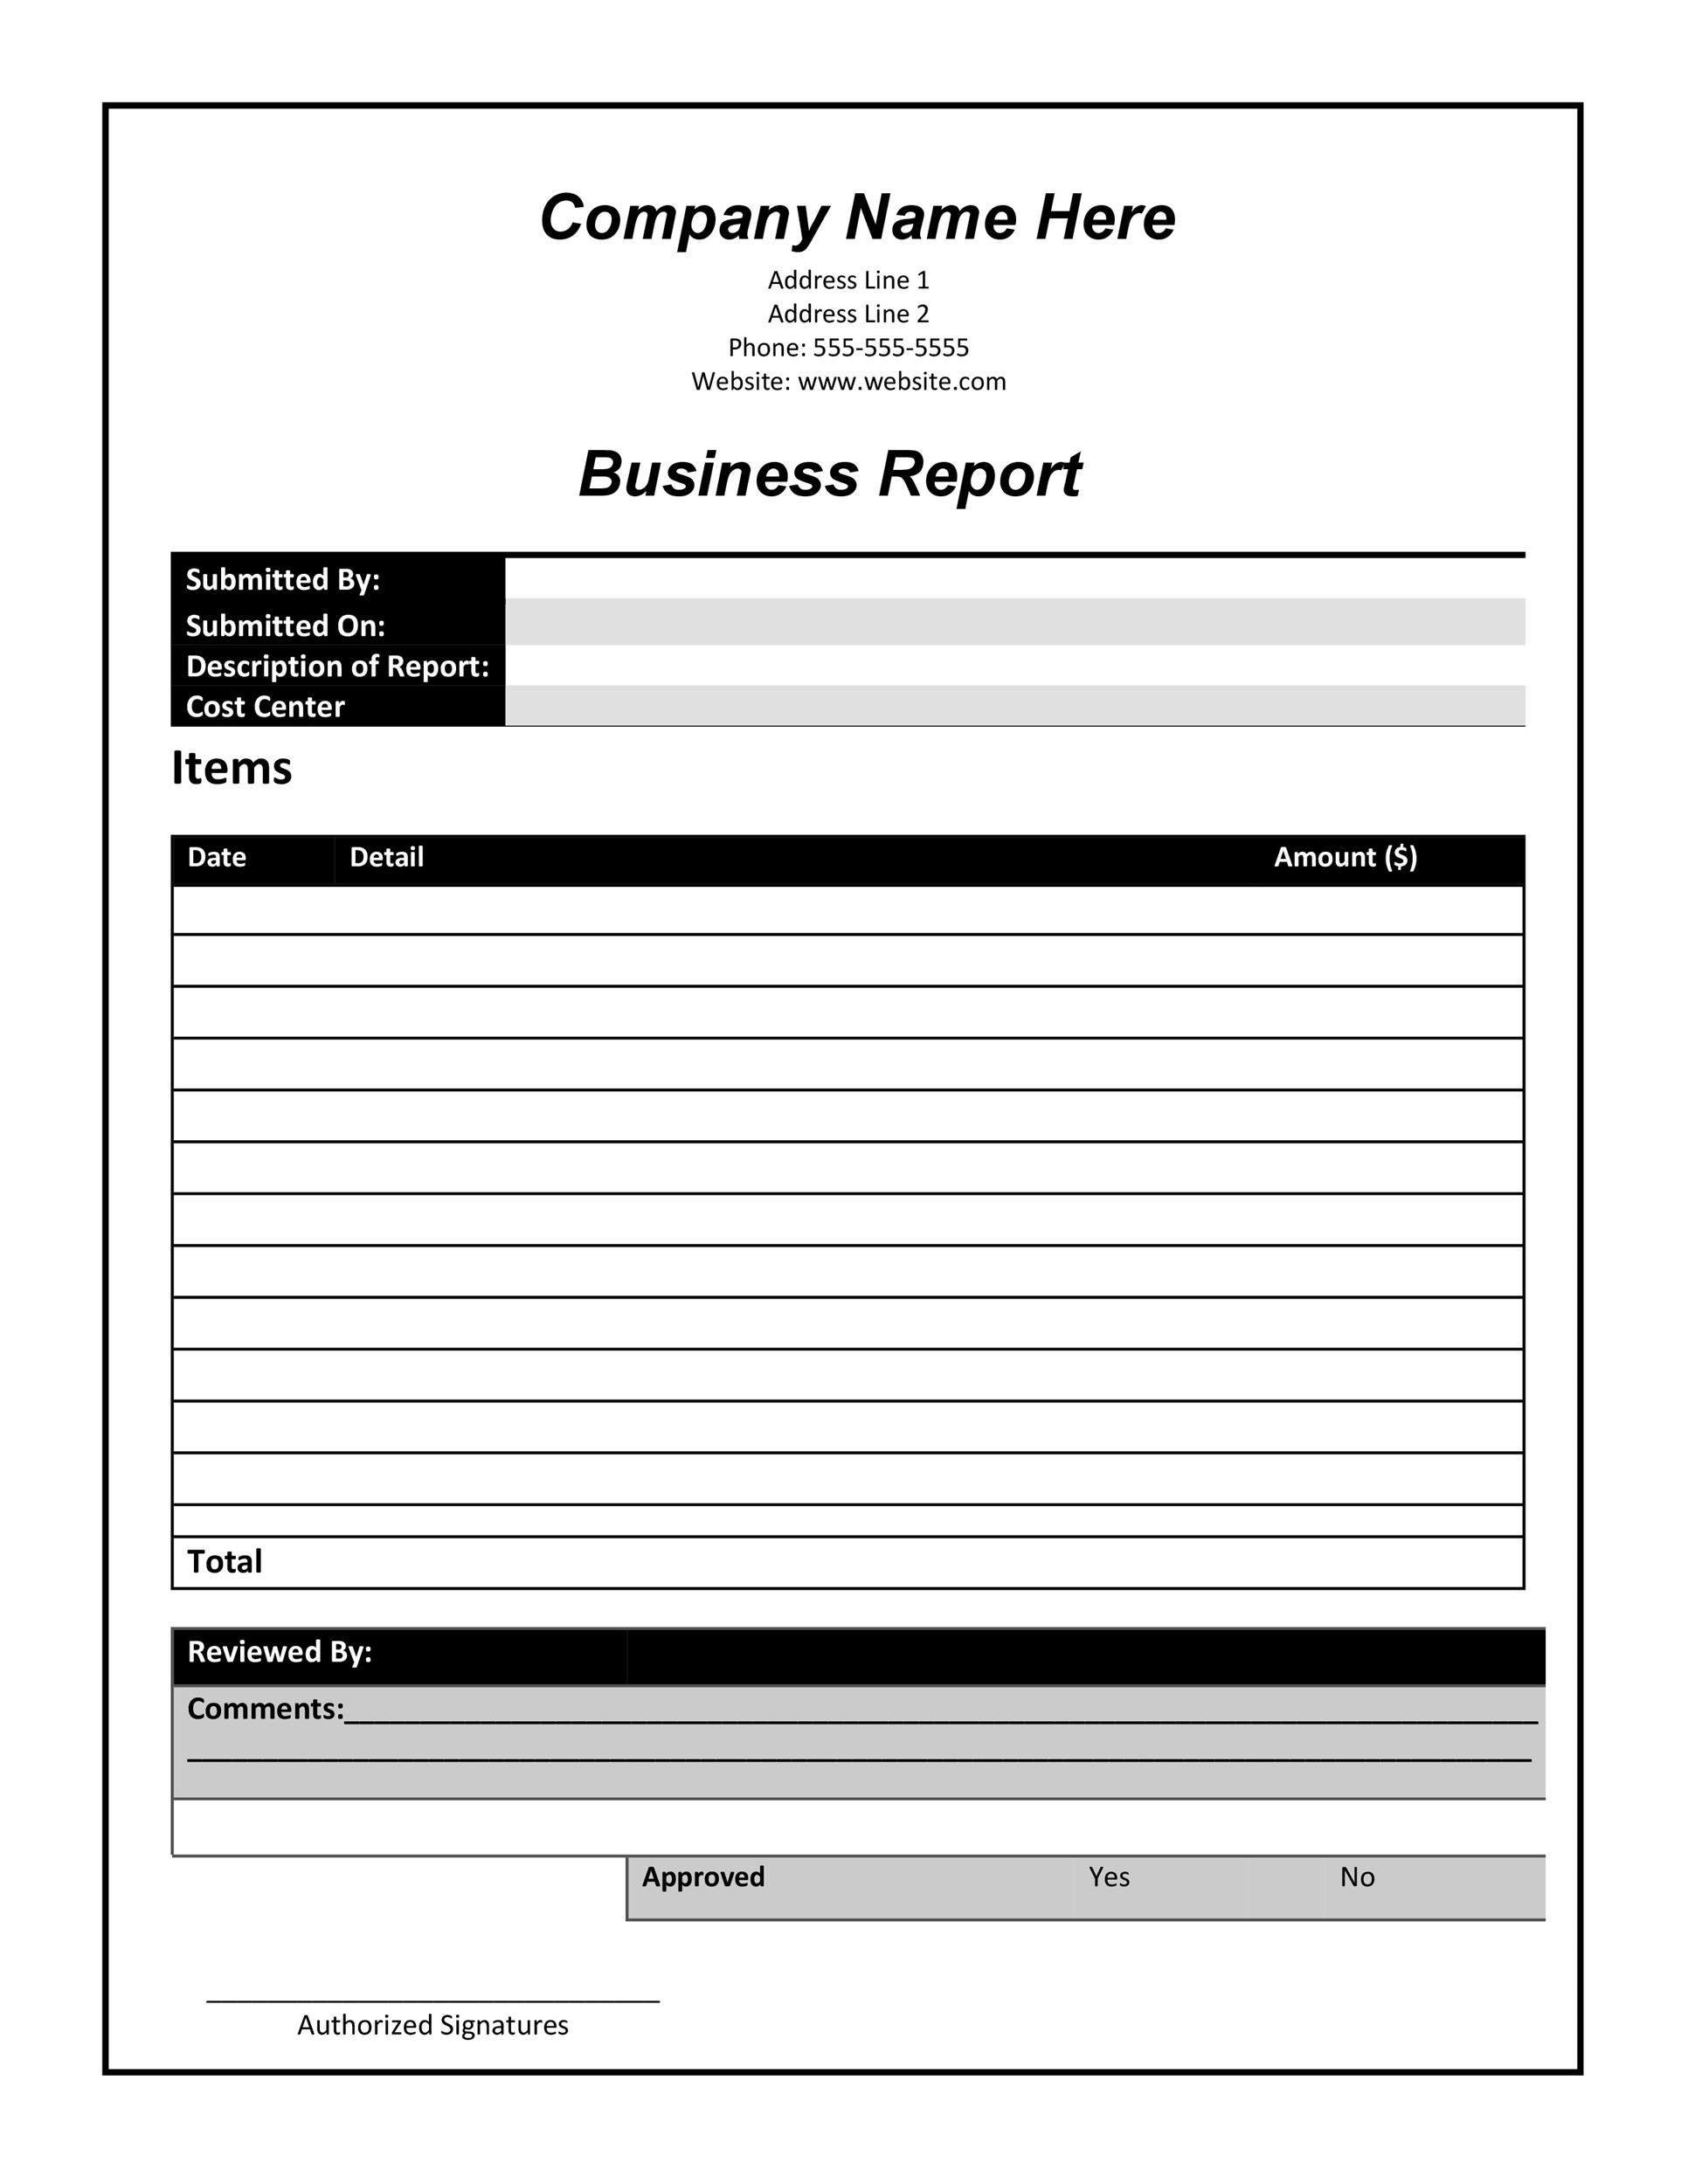 30+ Business Report Templates & Format Examples  Template Lab. Jobs Handing Out Flyers Template. Sample Letter Recommendation Employment Template. Resume Writing Cover Letters Template. Invoice Template For Builders Template. Name Tent Templates. Family History Template 937371. Wine Tasting Invitation Template 2. Resume Template For Doctors Template